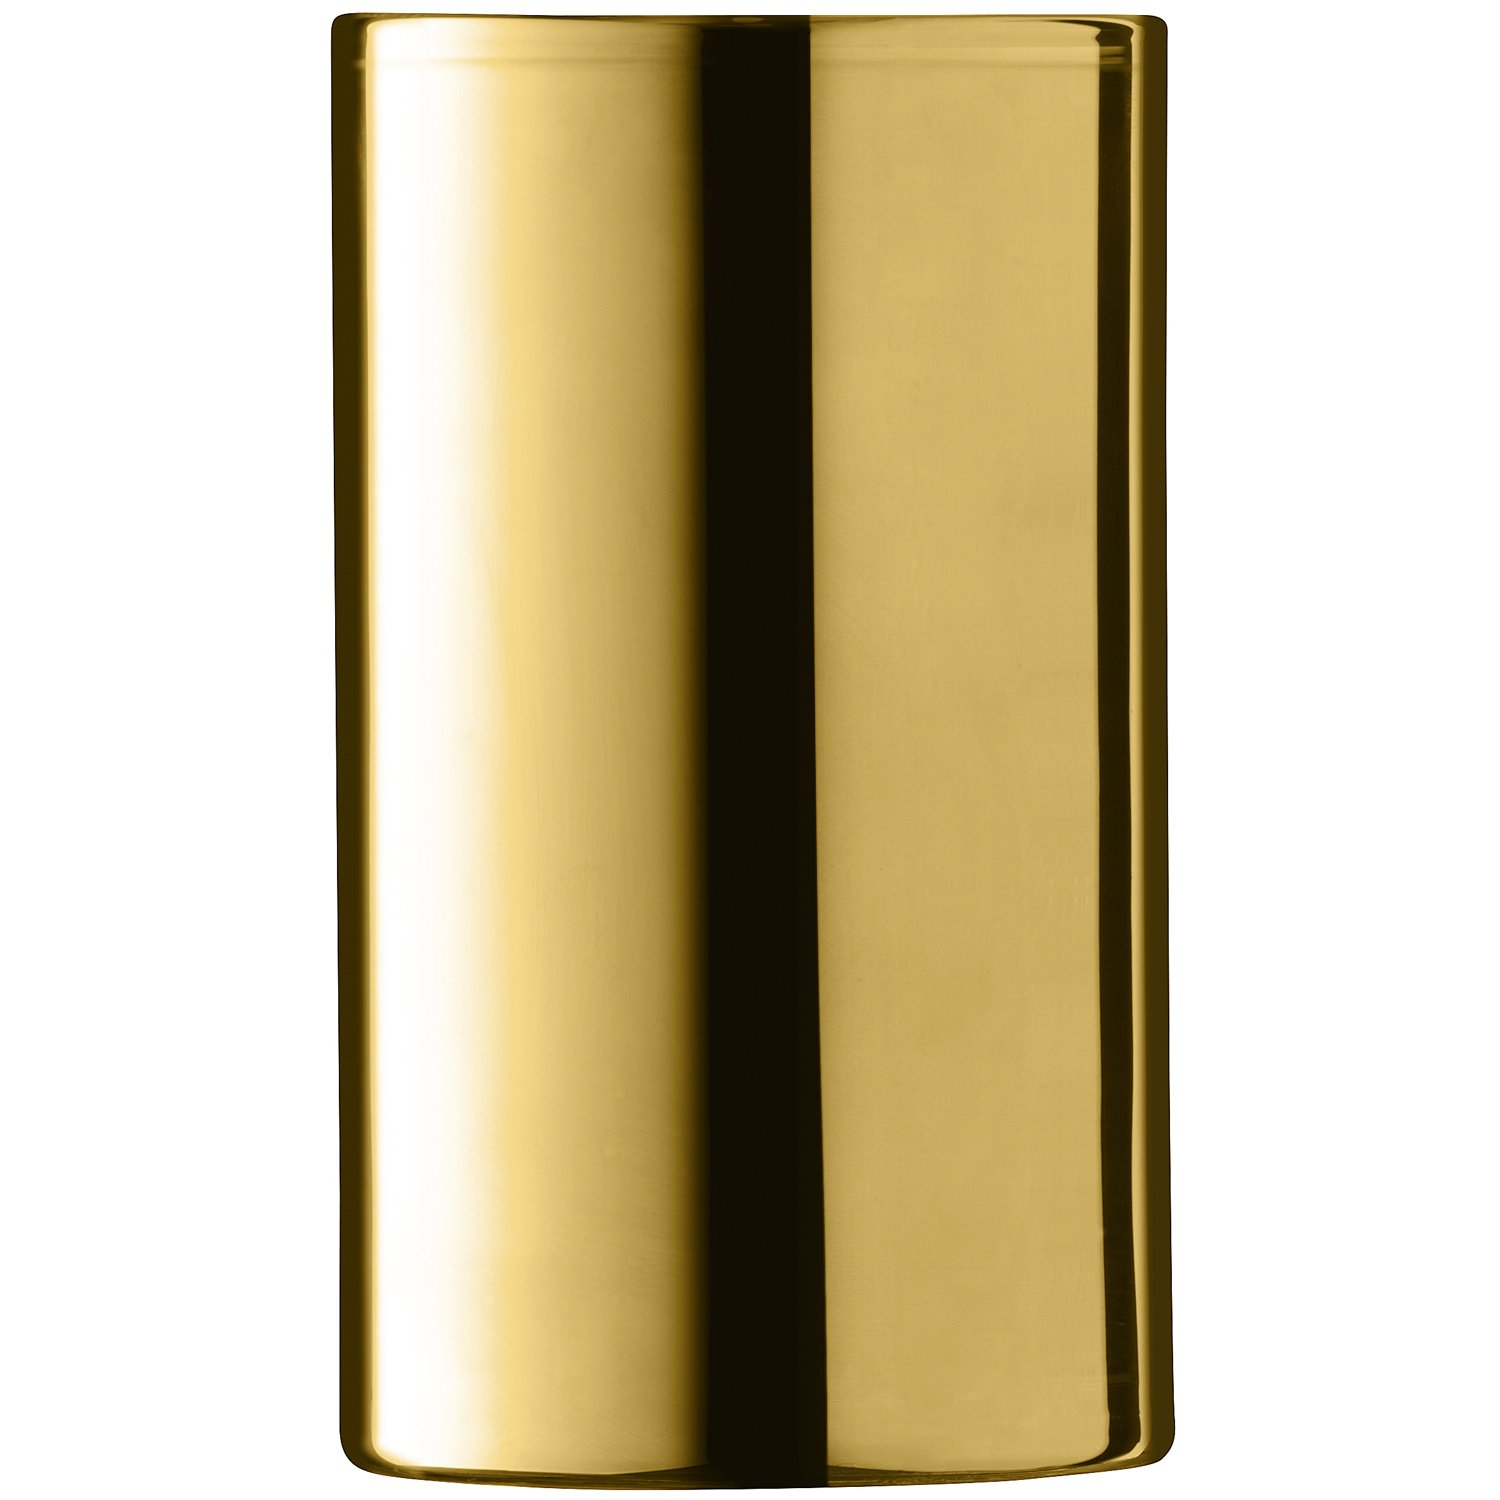 10-Inch Gold Foil OA CDGD-RD 10 Oasis Supply Round Cake Drum